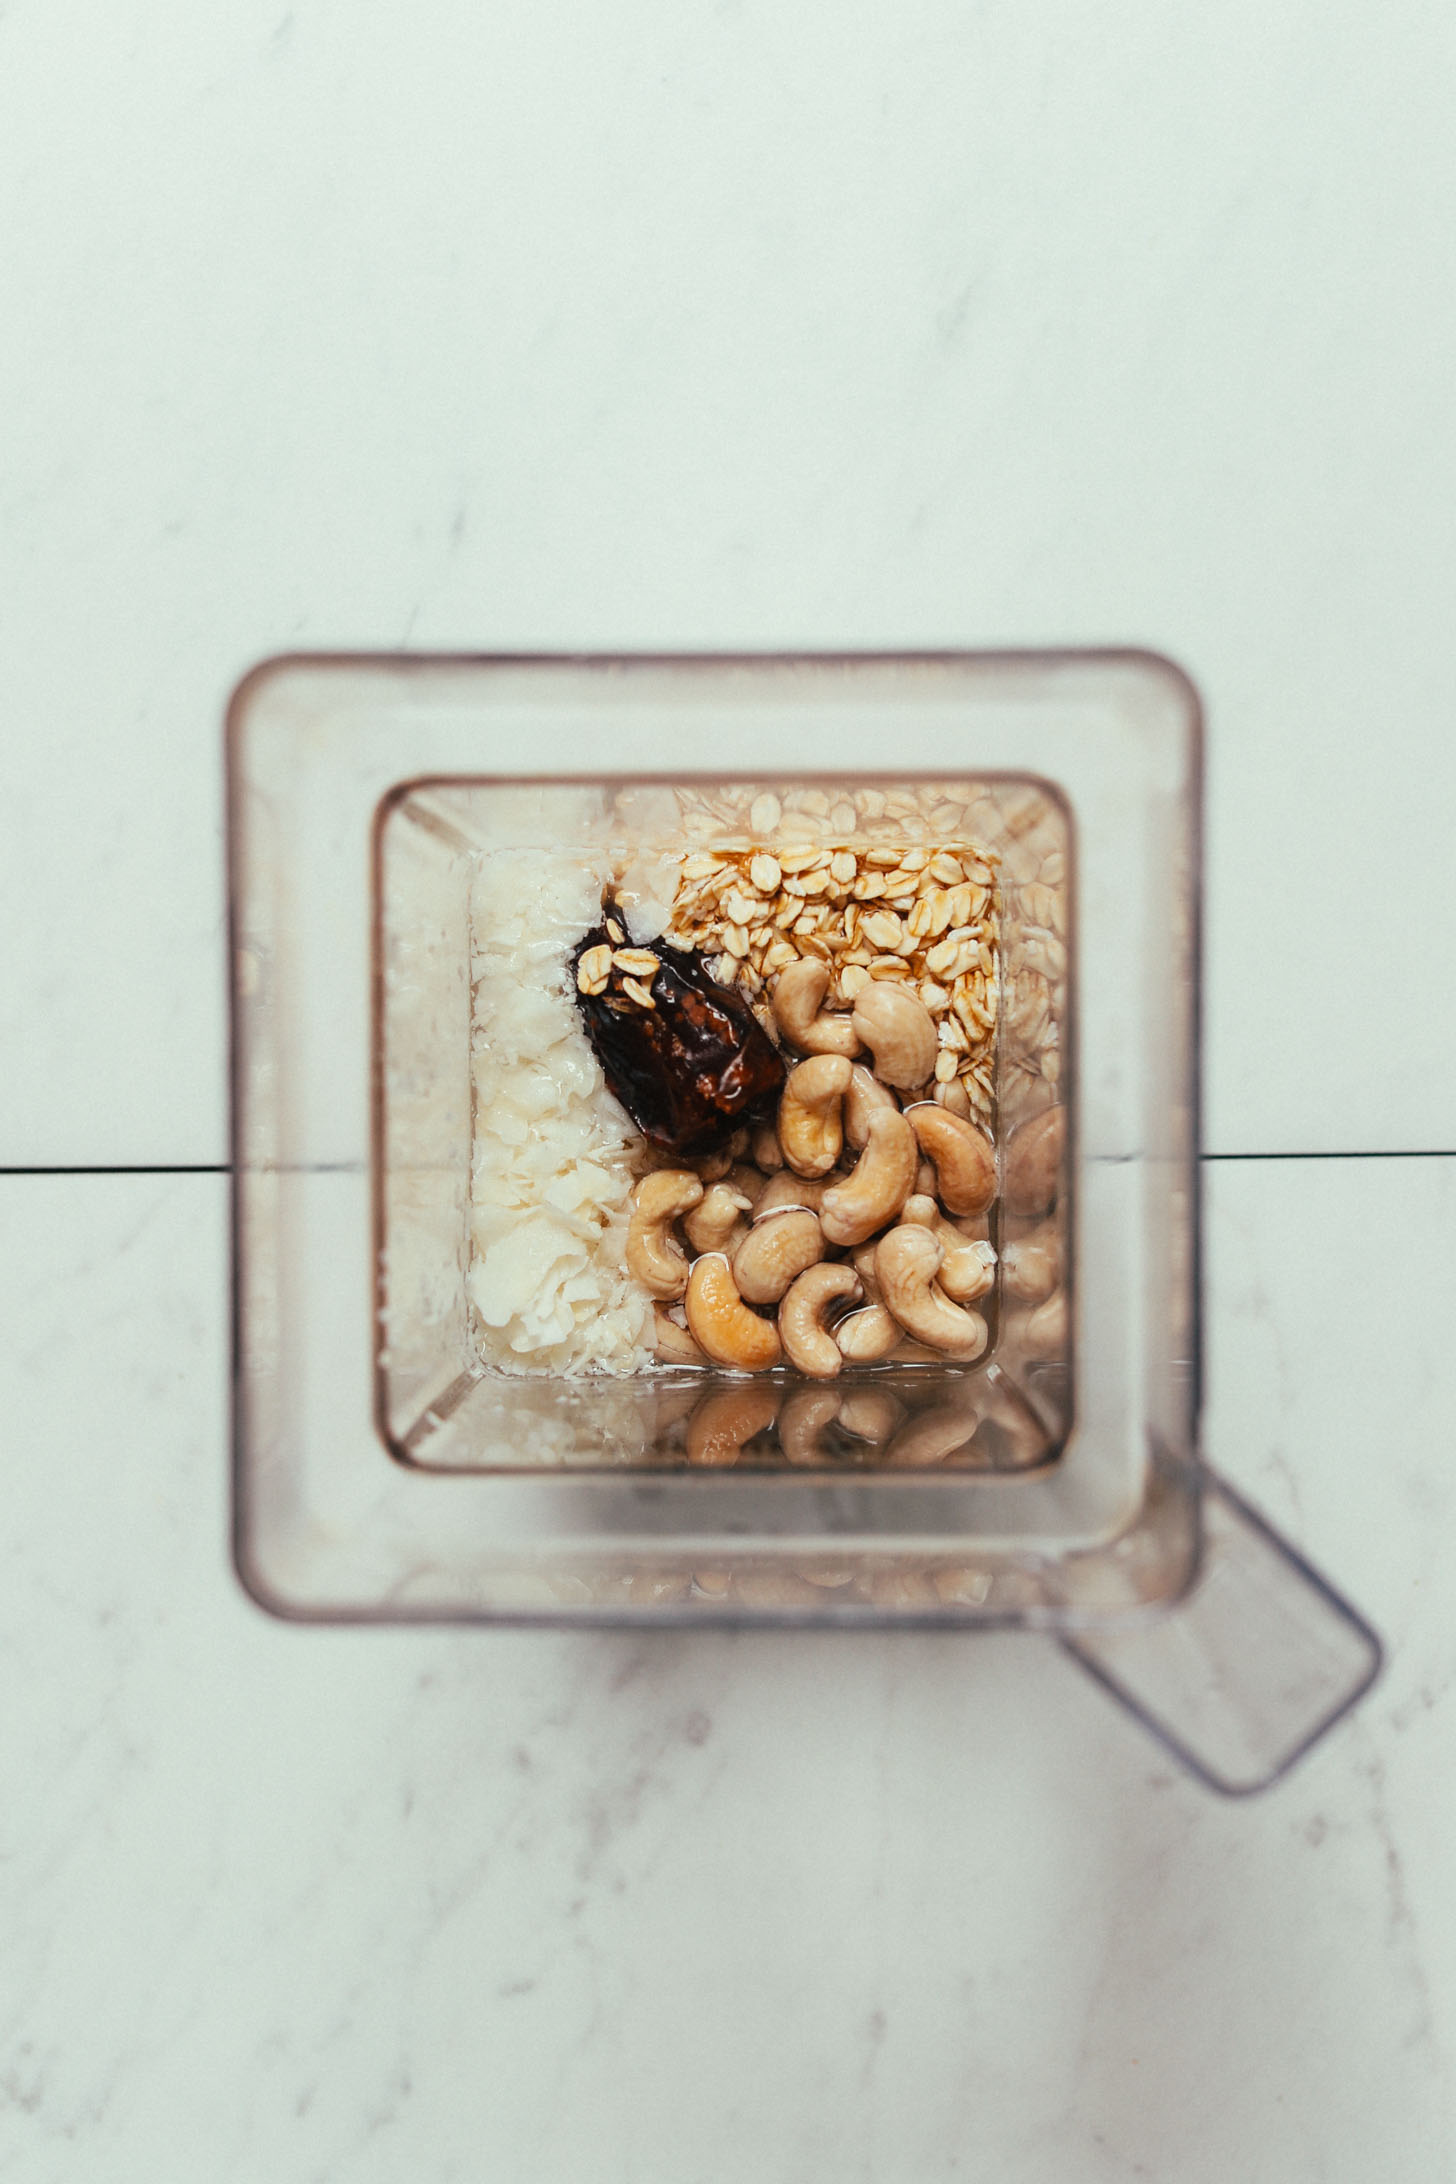 Blender filled with ingredients for making our Cashew Coconut Oat Milk Creamer